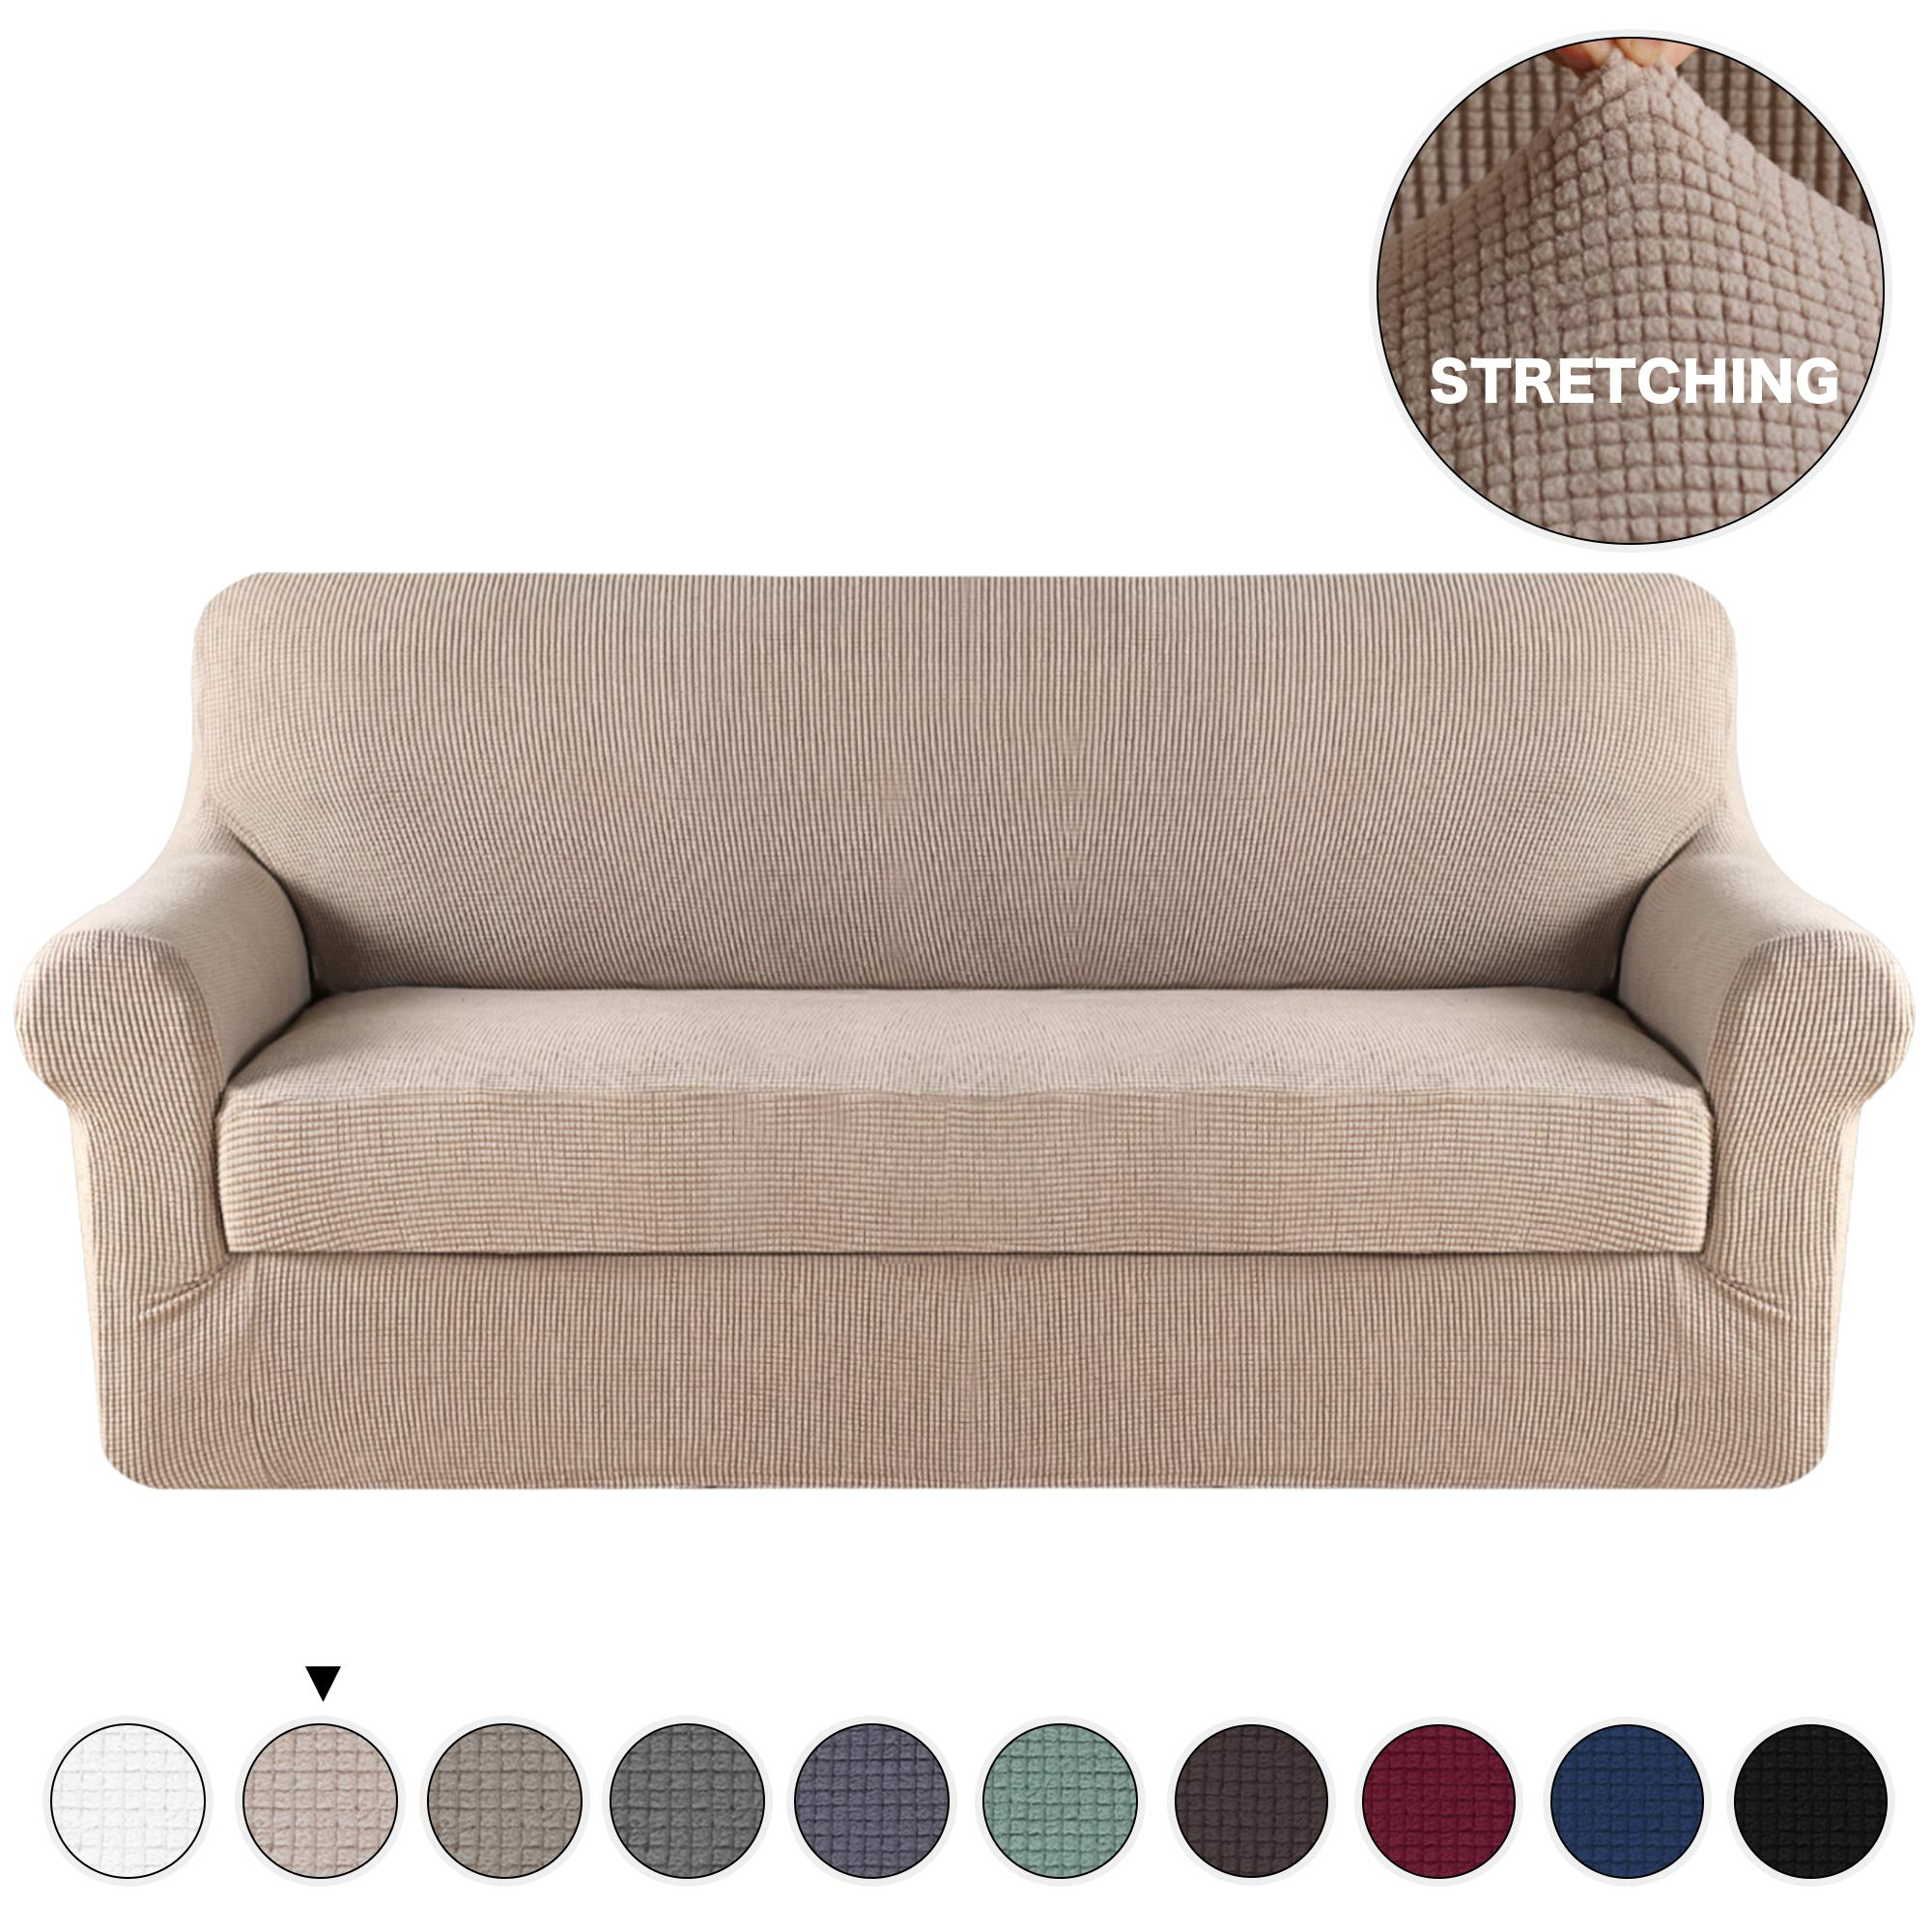 Turquoize 2 Piece Couch Covers for Furniture Sofa Protector Cover, Khaki Spandex Slipcover/Lounge Cover, Slip Resistant Stylish Furniture Protector Knit Jacquard Machine Washable, Sofa, Sand by Turquoize